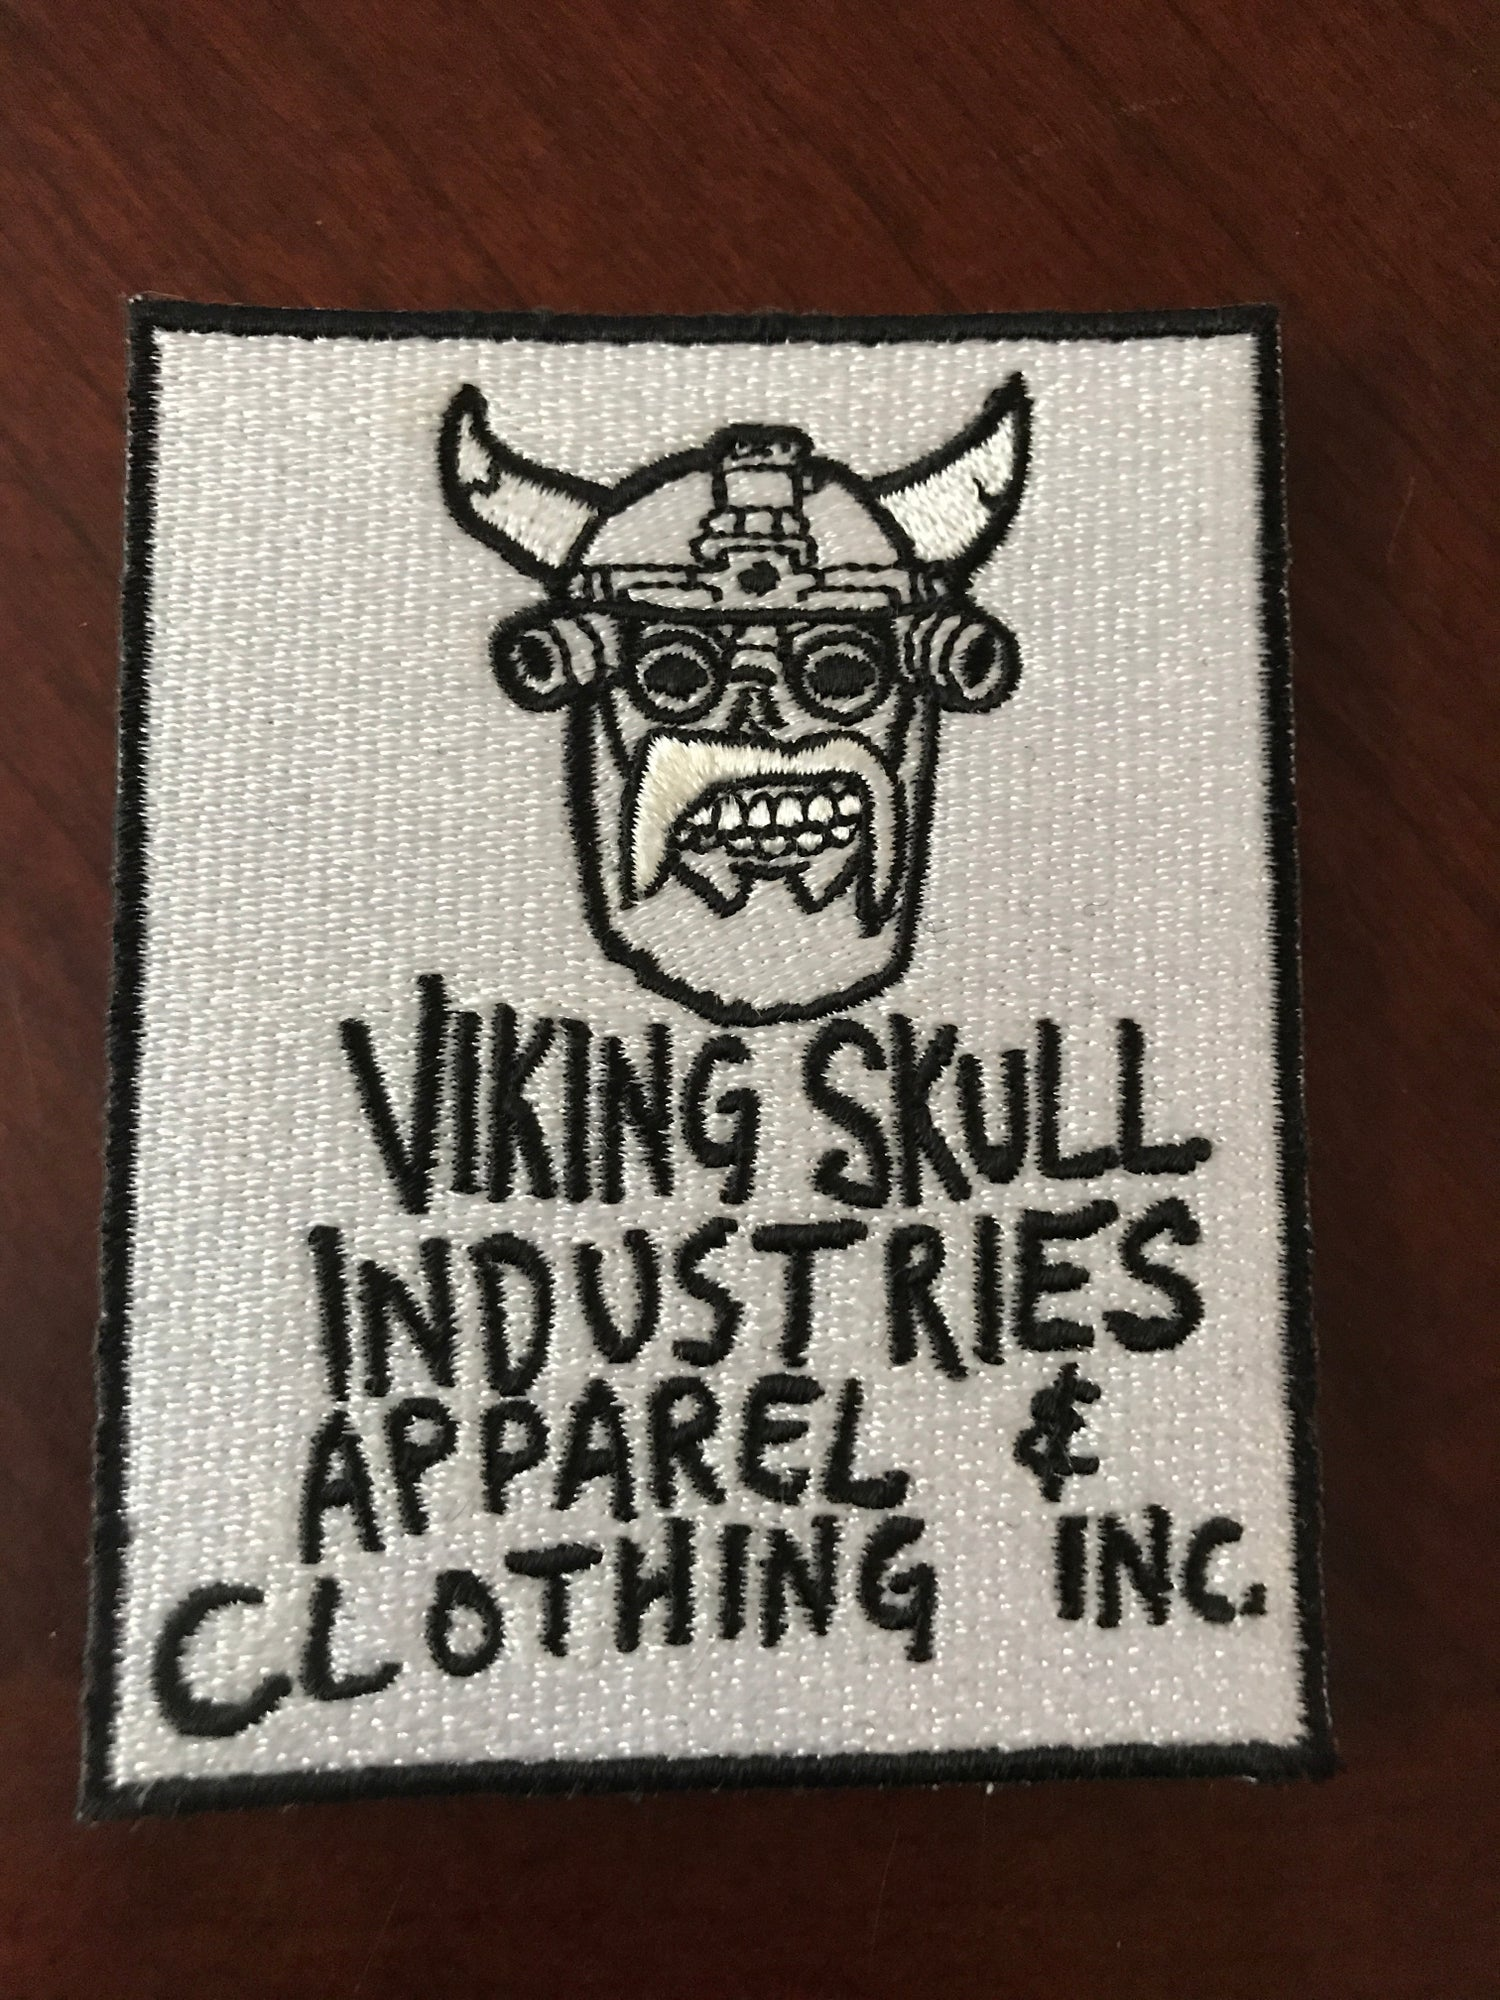 Image of VIKING SKULL INDUSTRIES APPAREL & CLOTHING INC. PATCH